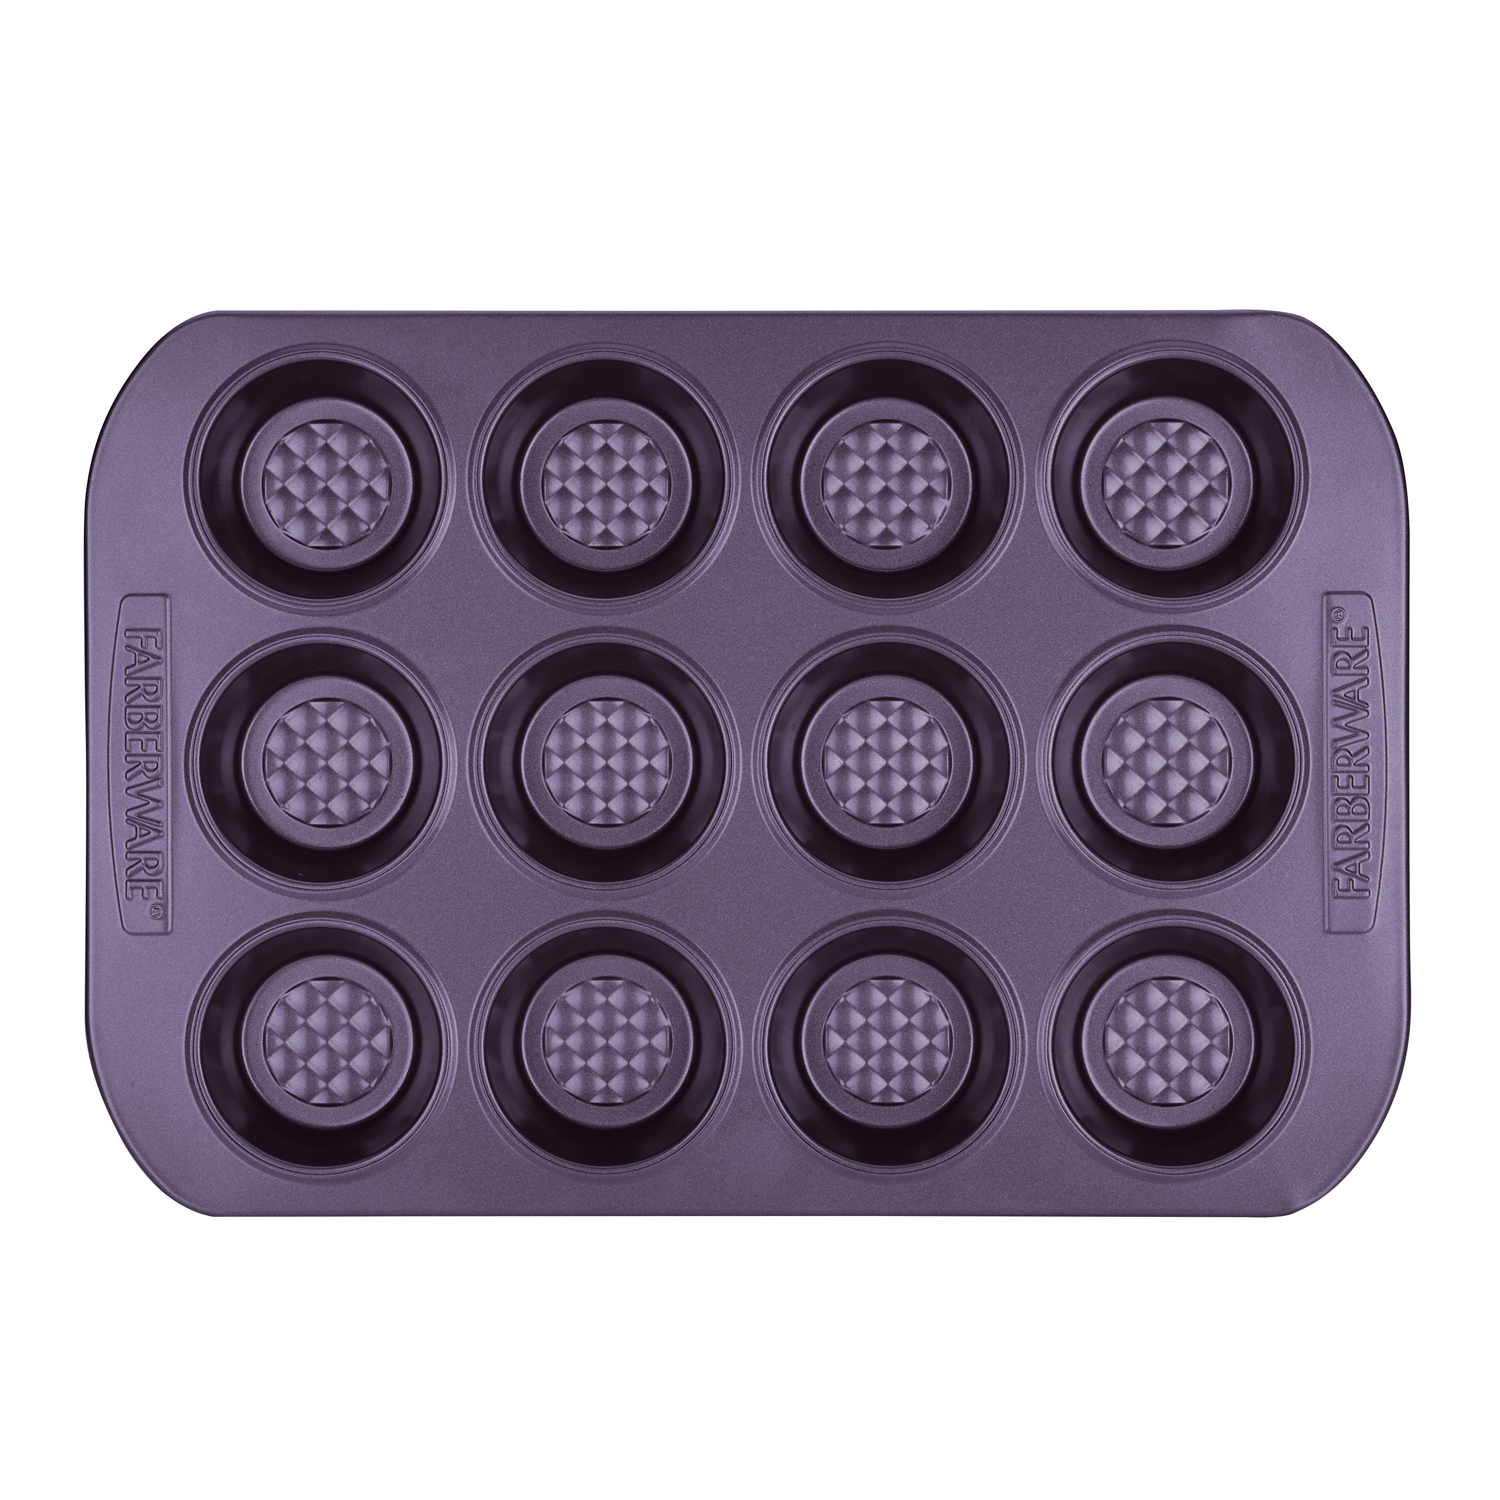 Farberware Colorvive Nonstick Muffin Pan, 12-Cup, Red